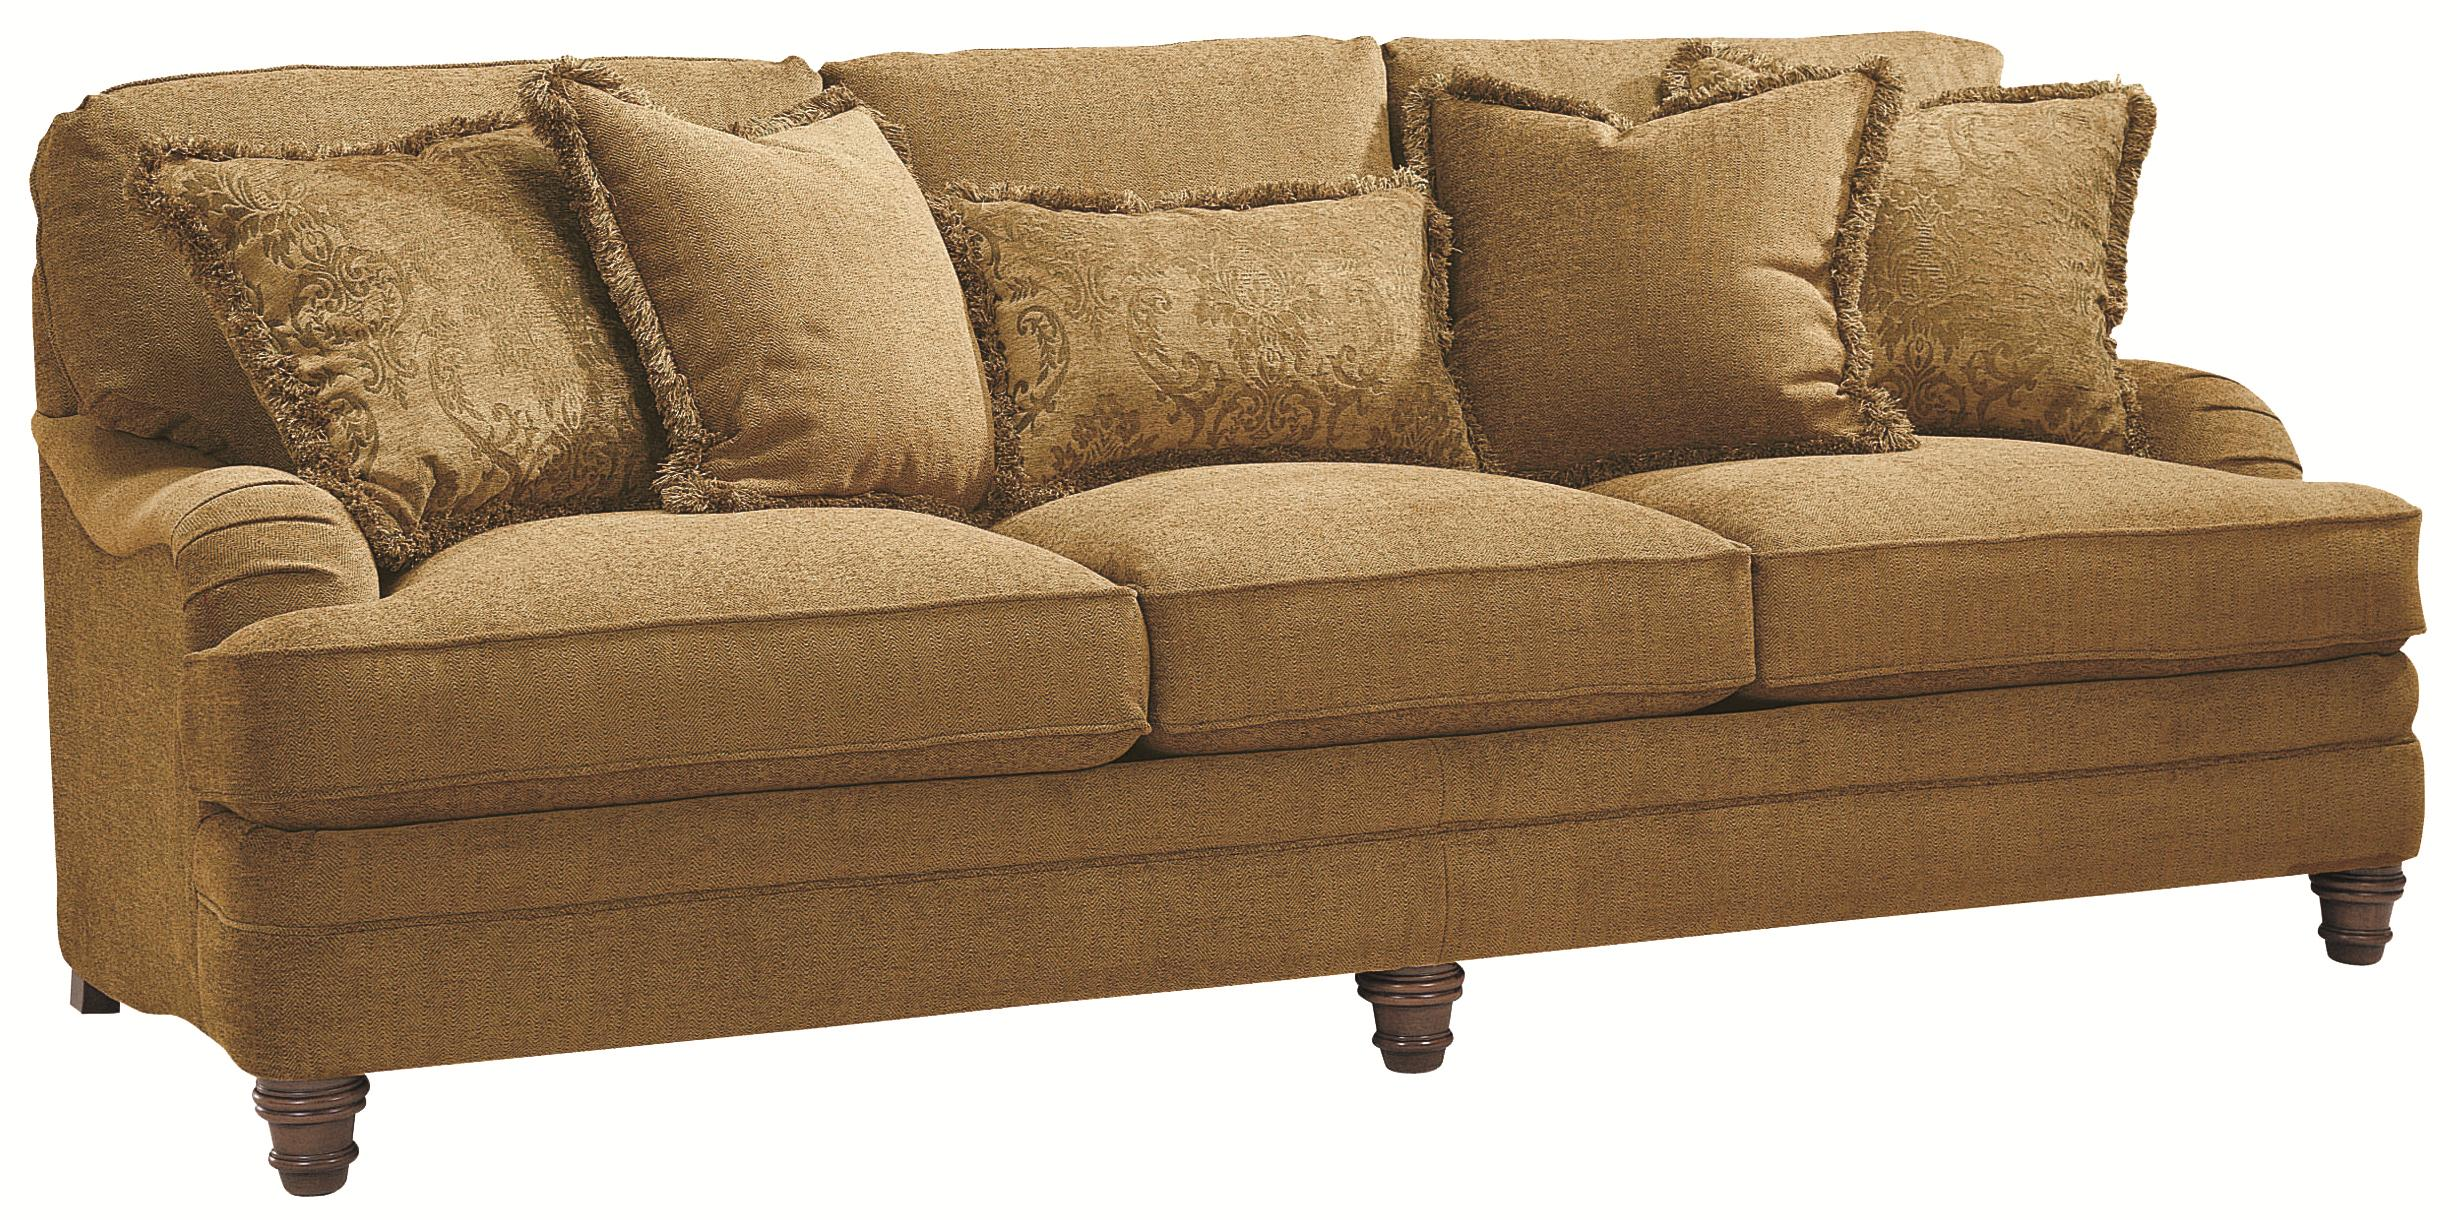 Bernhardt tarleton traditional styled stationary sofa for Bernhardt furniture